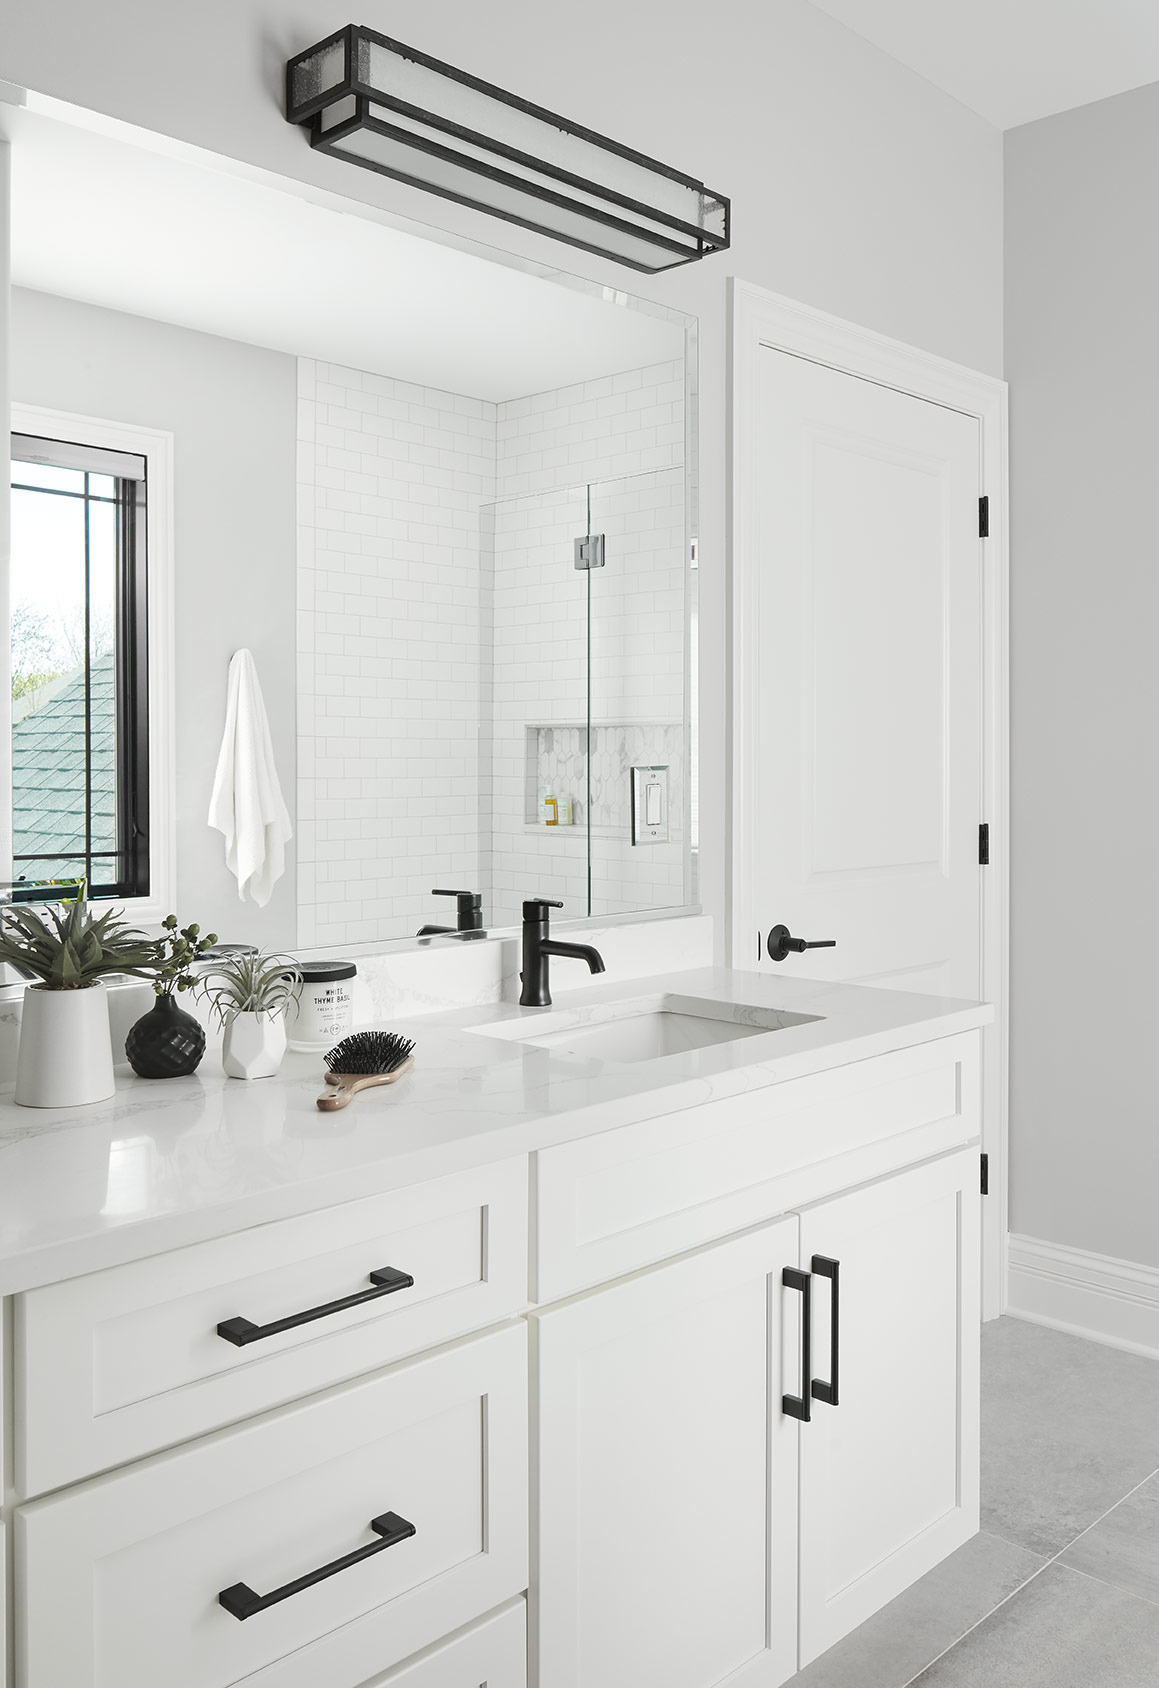 The kid's bathrooms are bright, clean spaces for them to enjoy with subtle textures introduced in the tiles and countertop.